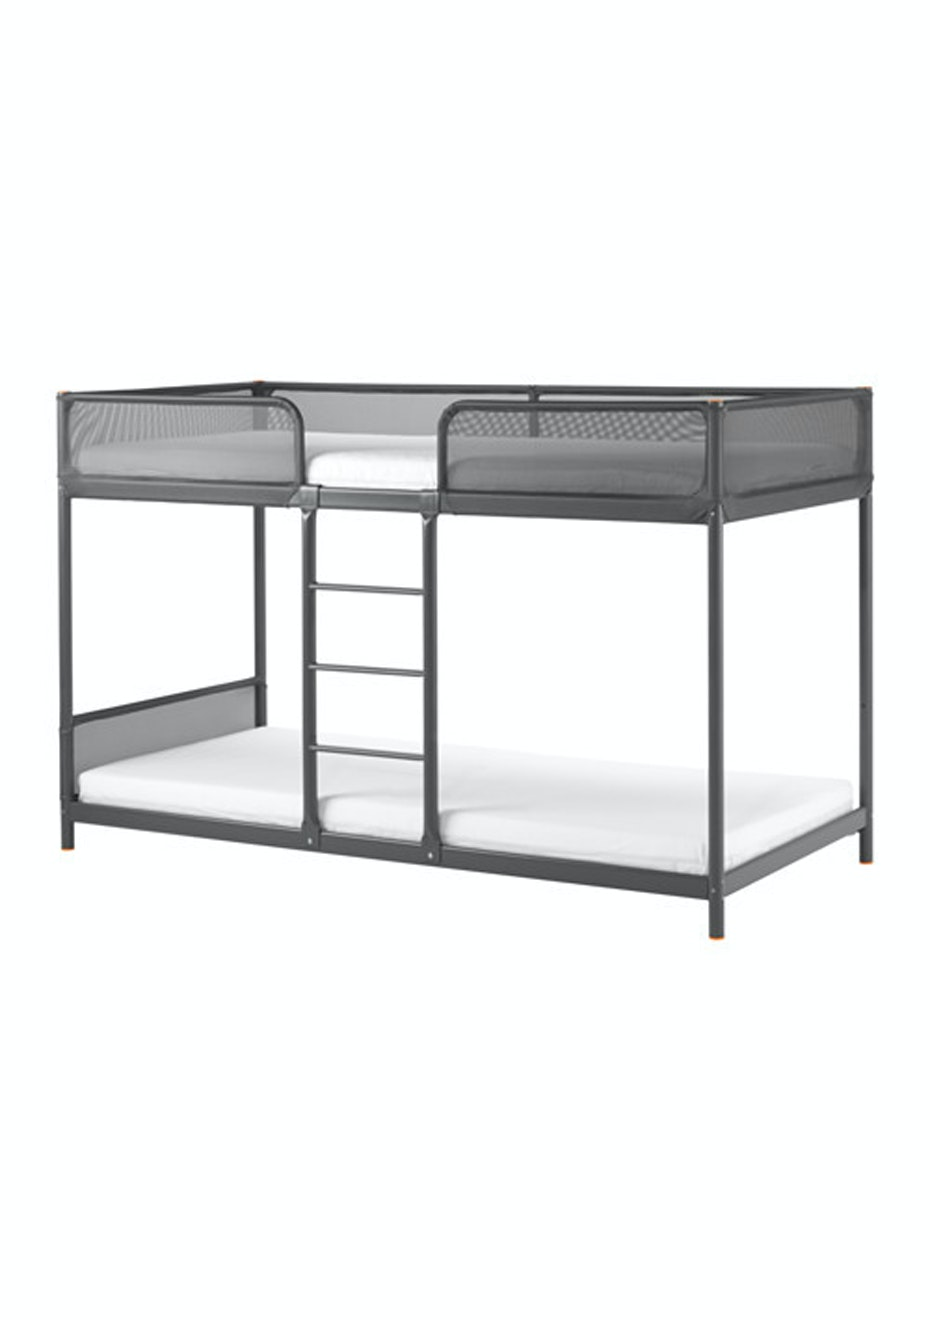 Ikea Tuffing Bunk Bed Frame 96 5x207cm Dark Grey Affordable Ikea Home Makeover Onceit